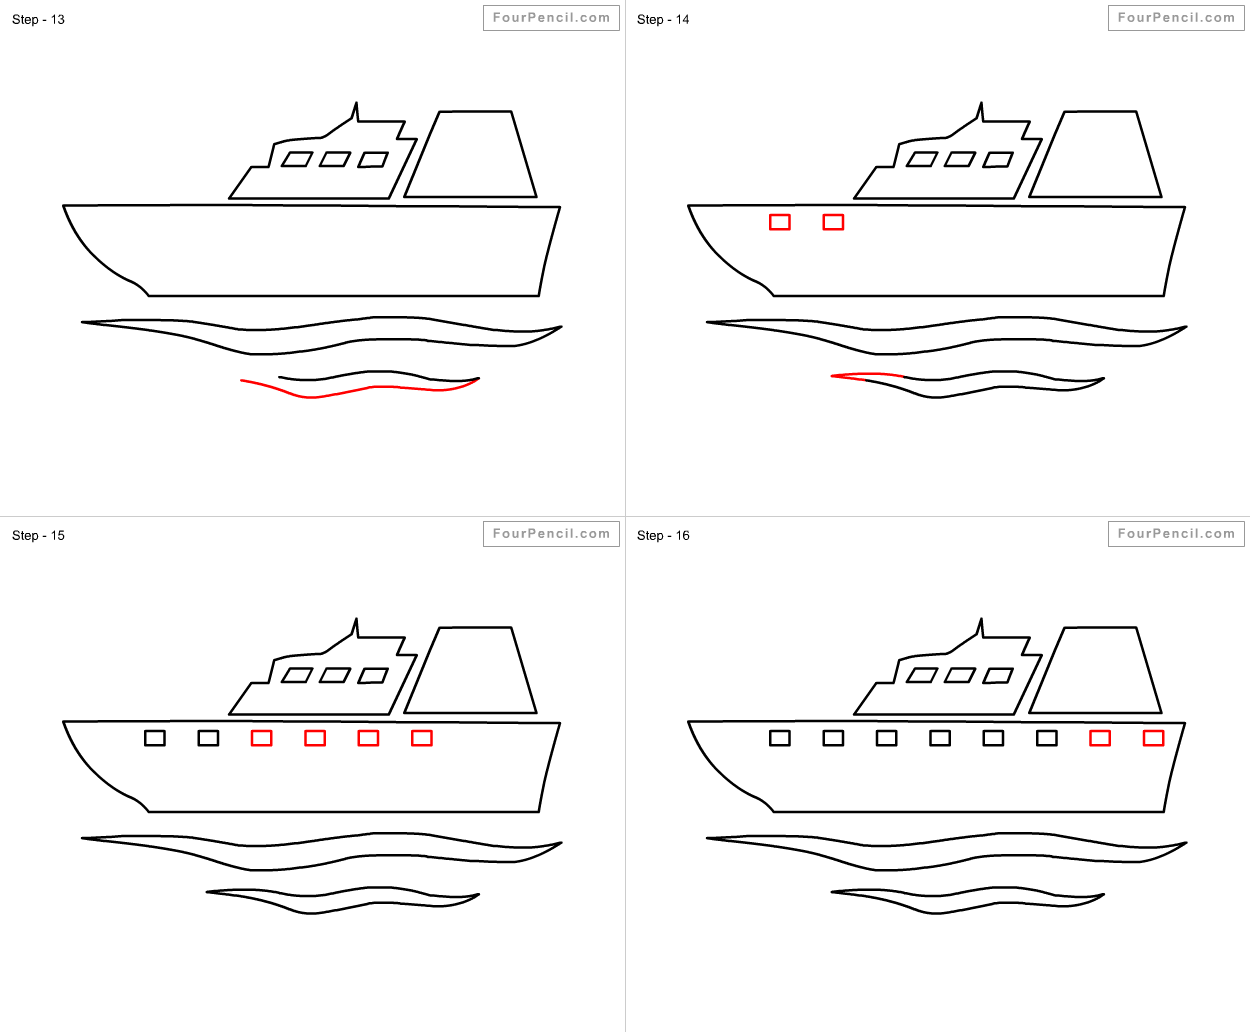 draw a ship step by step how to draw a boat step by step 12 great ways how to step draw a by ship step